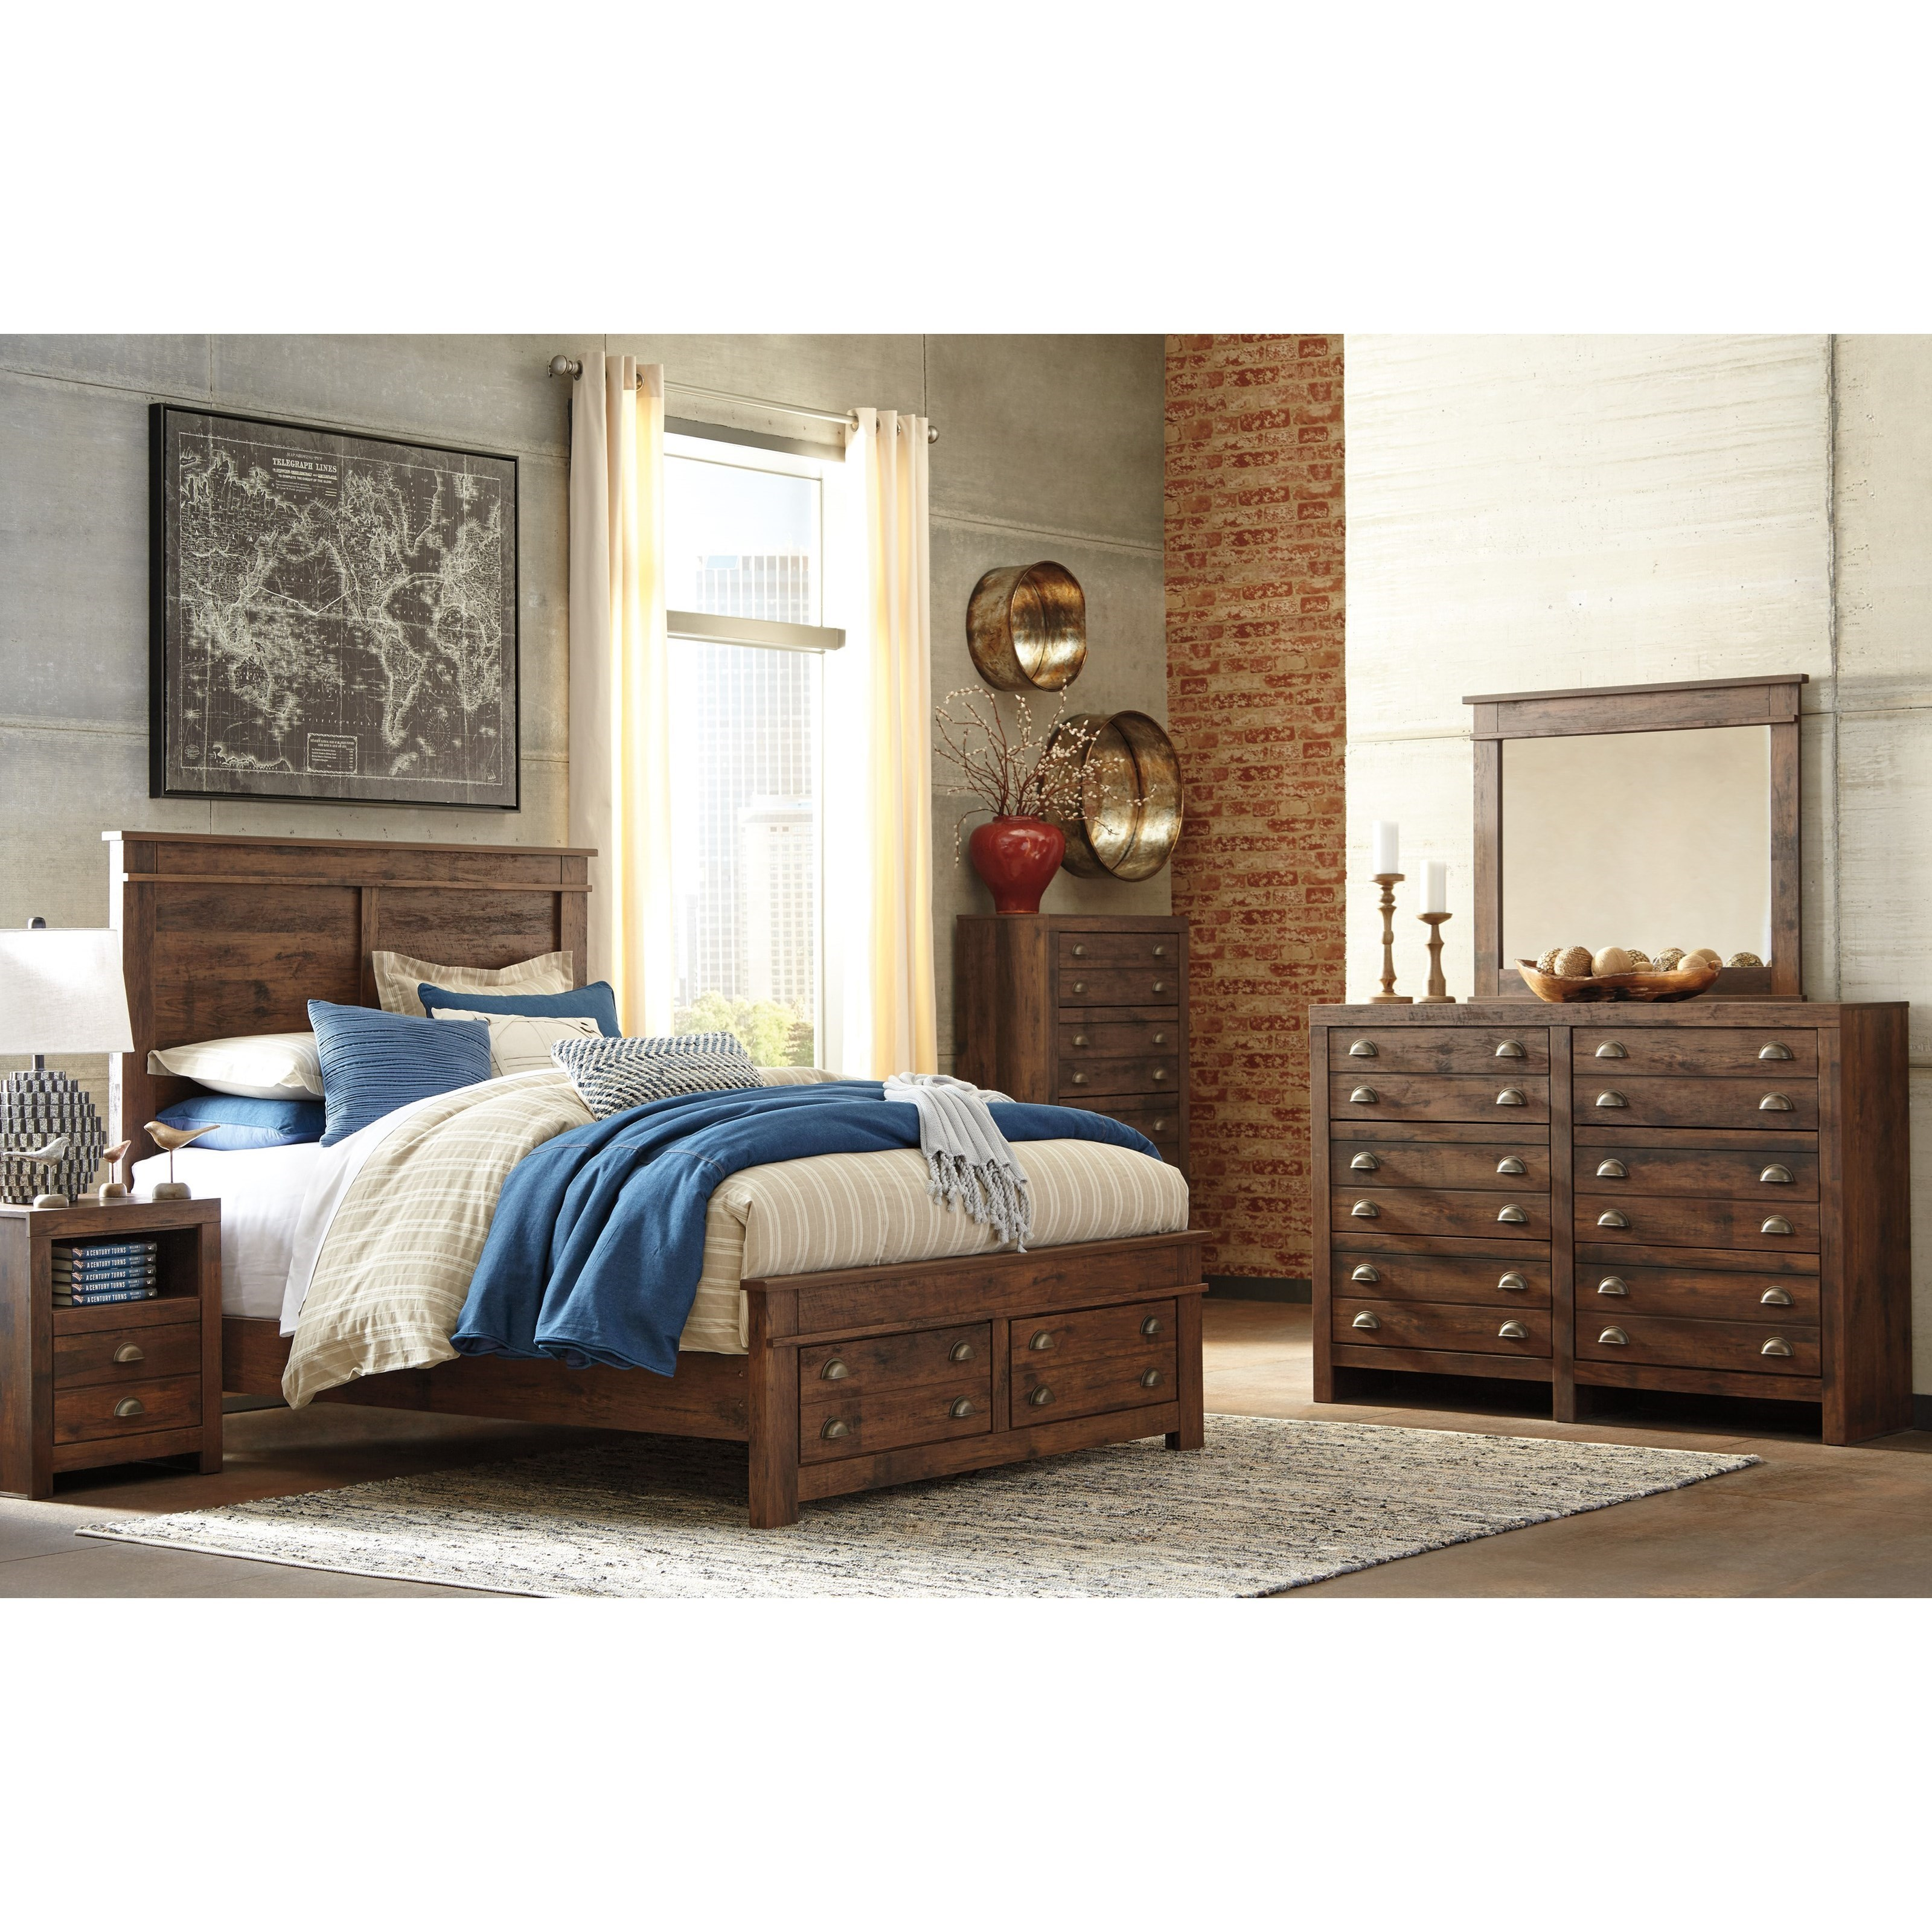 Signature Design by Ashley Hammerstead Queen Bedroom Group